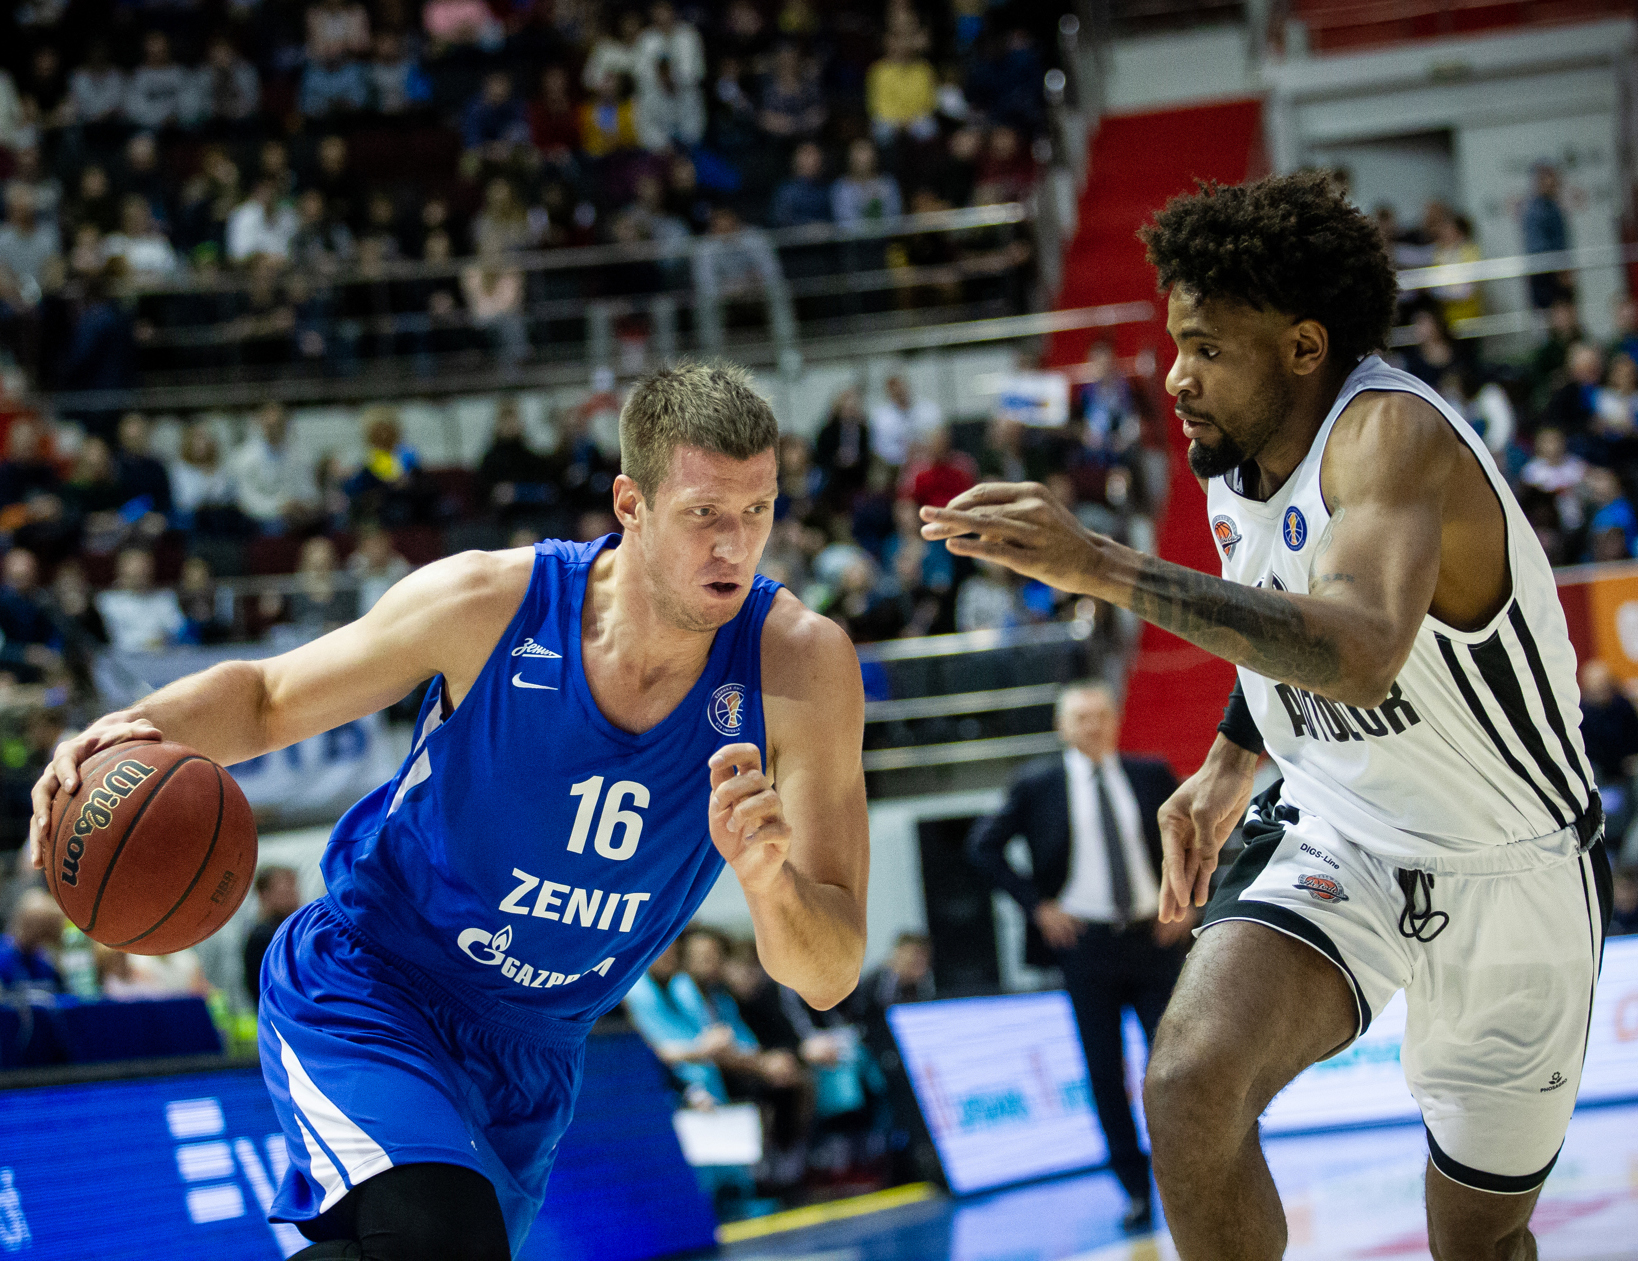 Zenit Blows Out Avtodor, Bounces Visitors From Top-8